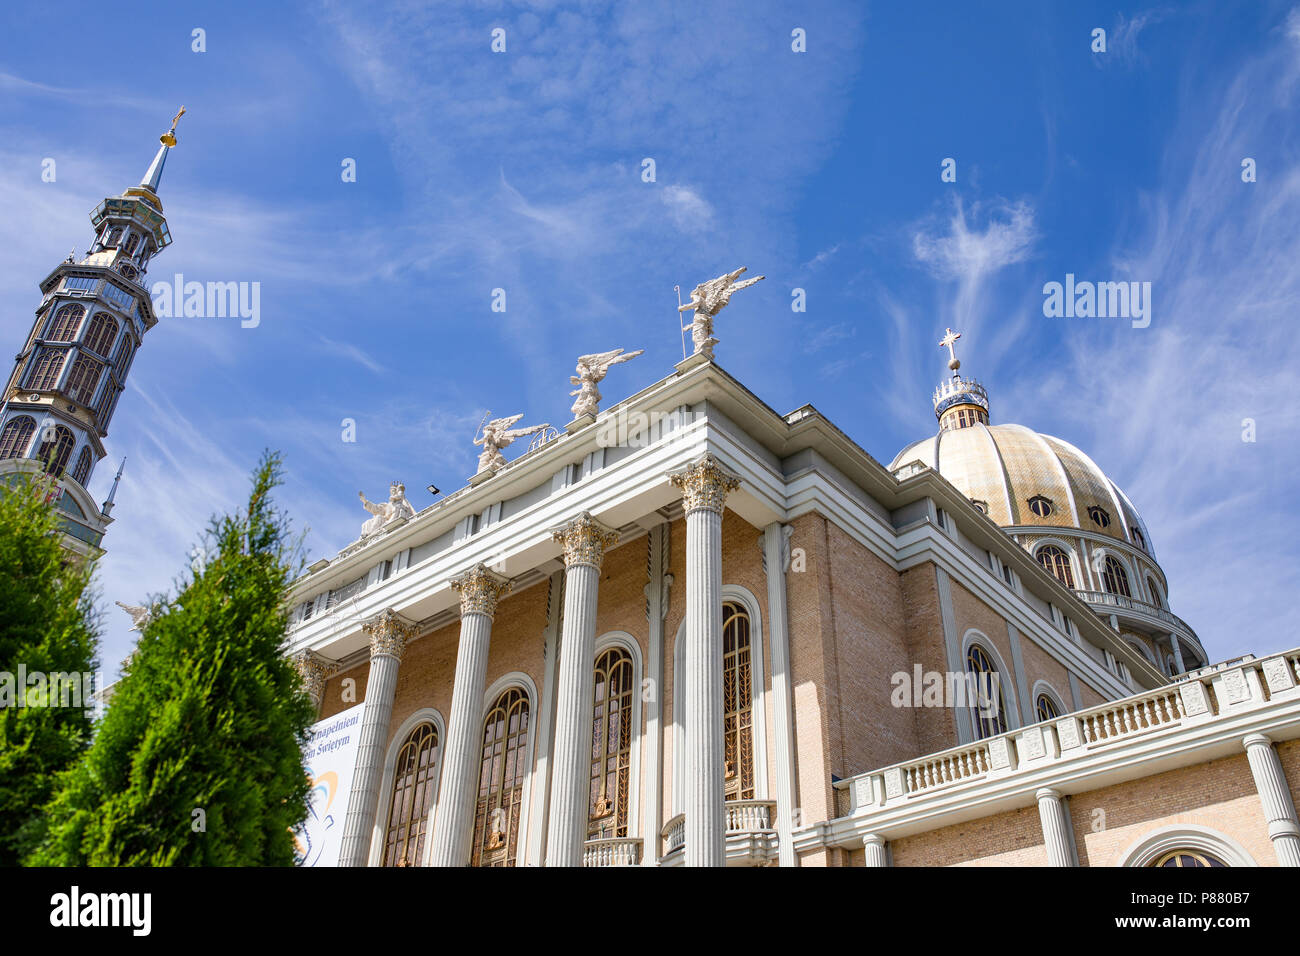 Lichen / Poland - 07.08.2018: the biggest catholic basilica in Poland. Interior of the modern church. - Stock Image